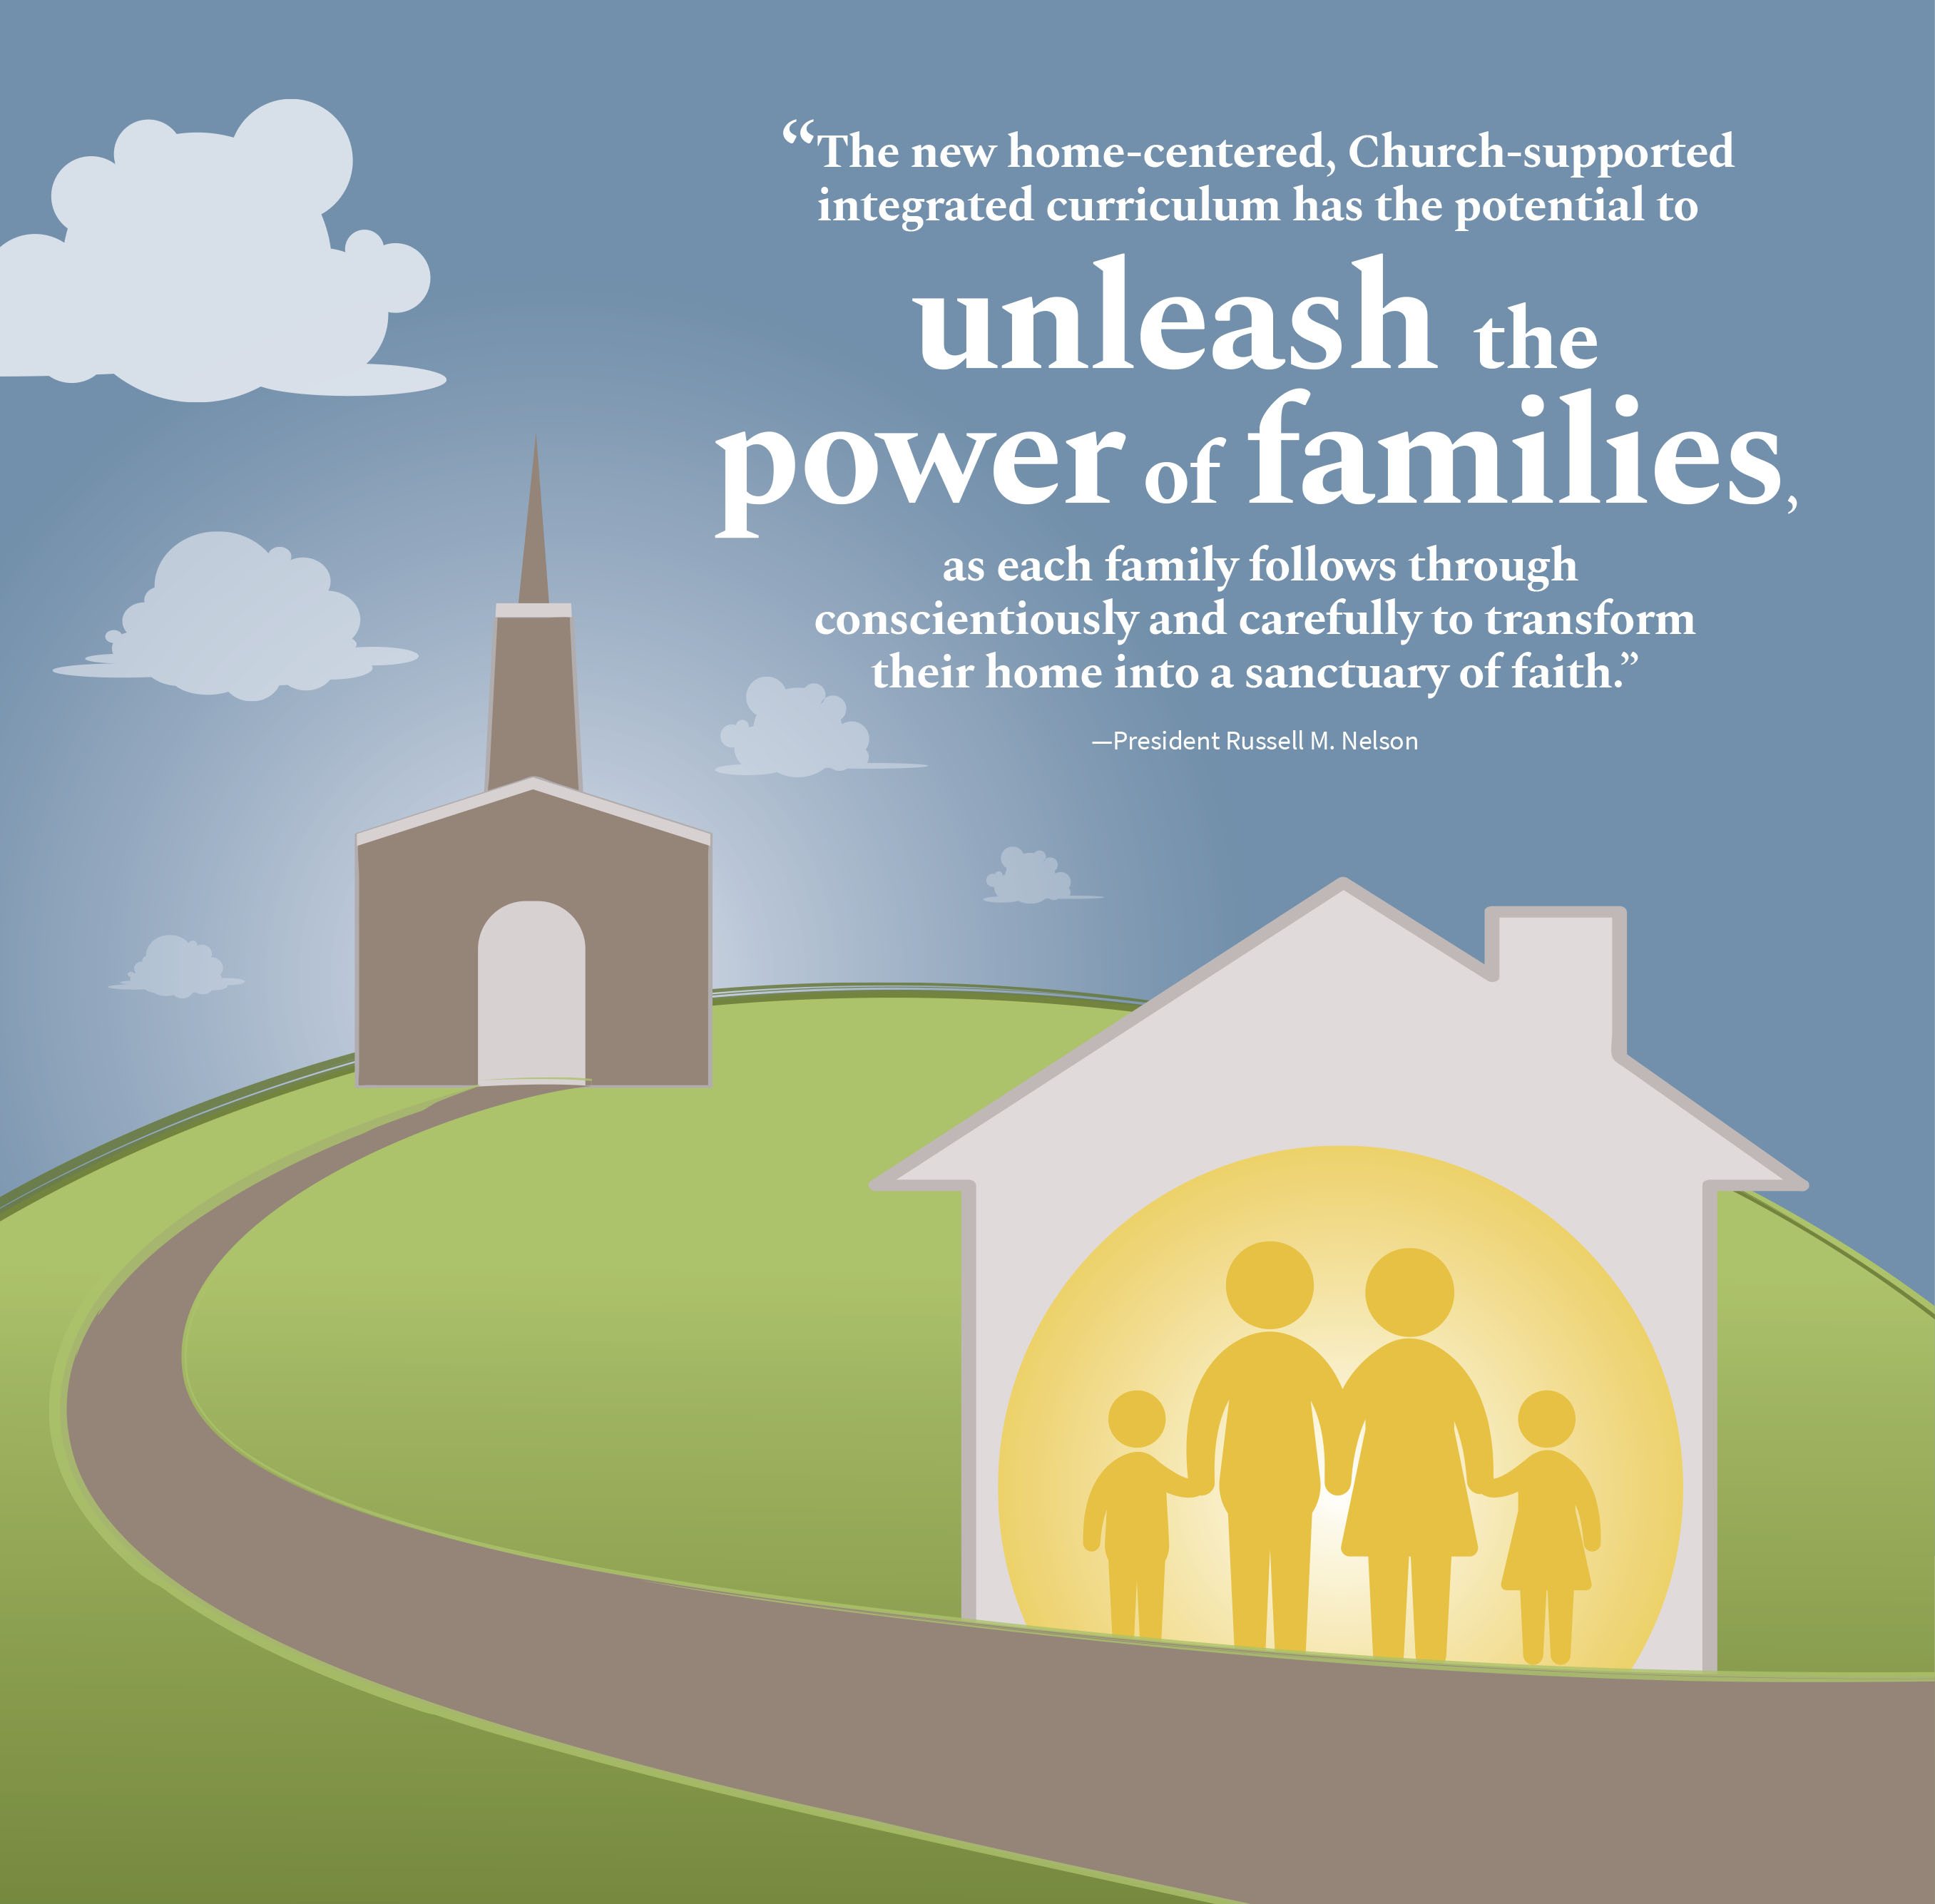 Families using the new home-centered, Church-supported curriculum are beginning to witness the power promised by President Nelson when he announced it during the October 2018 general conference.